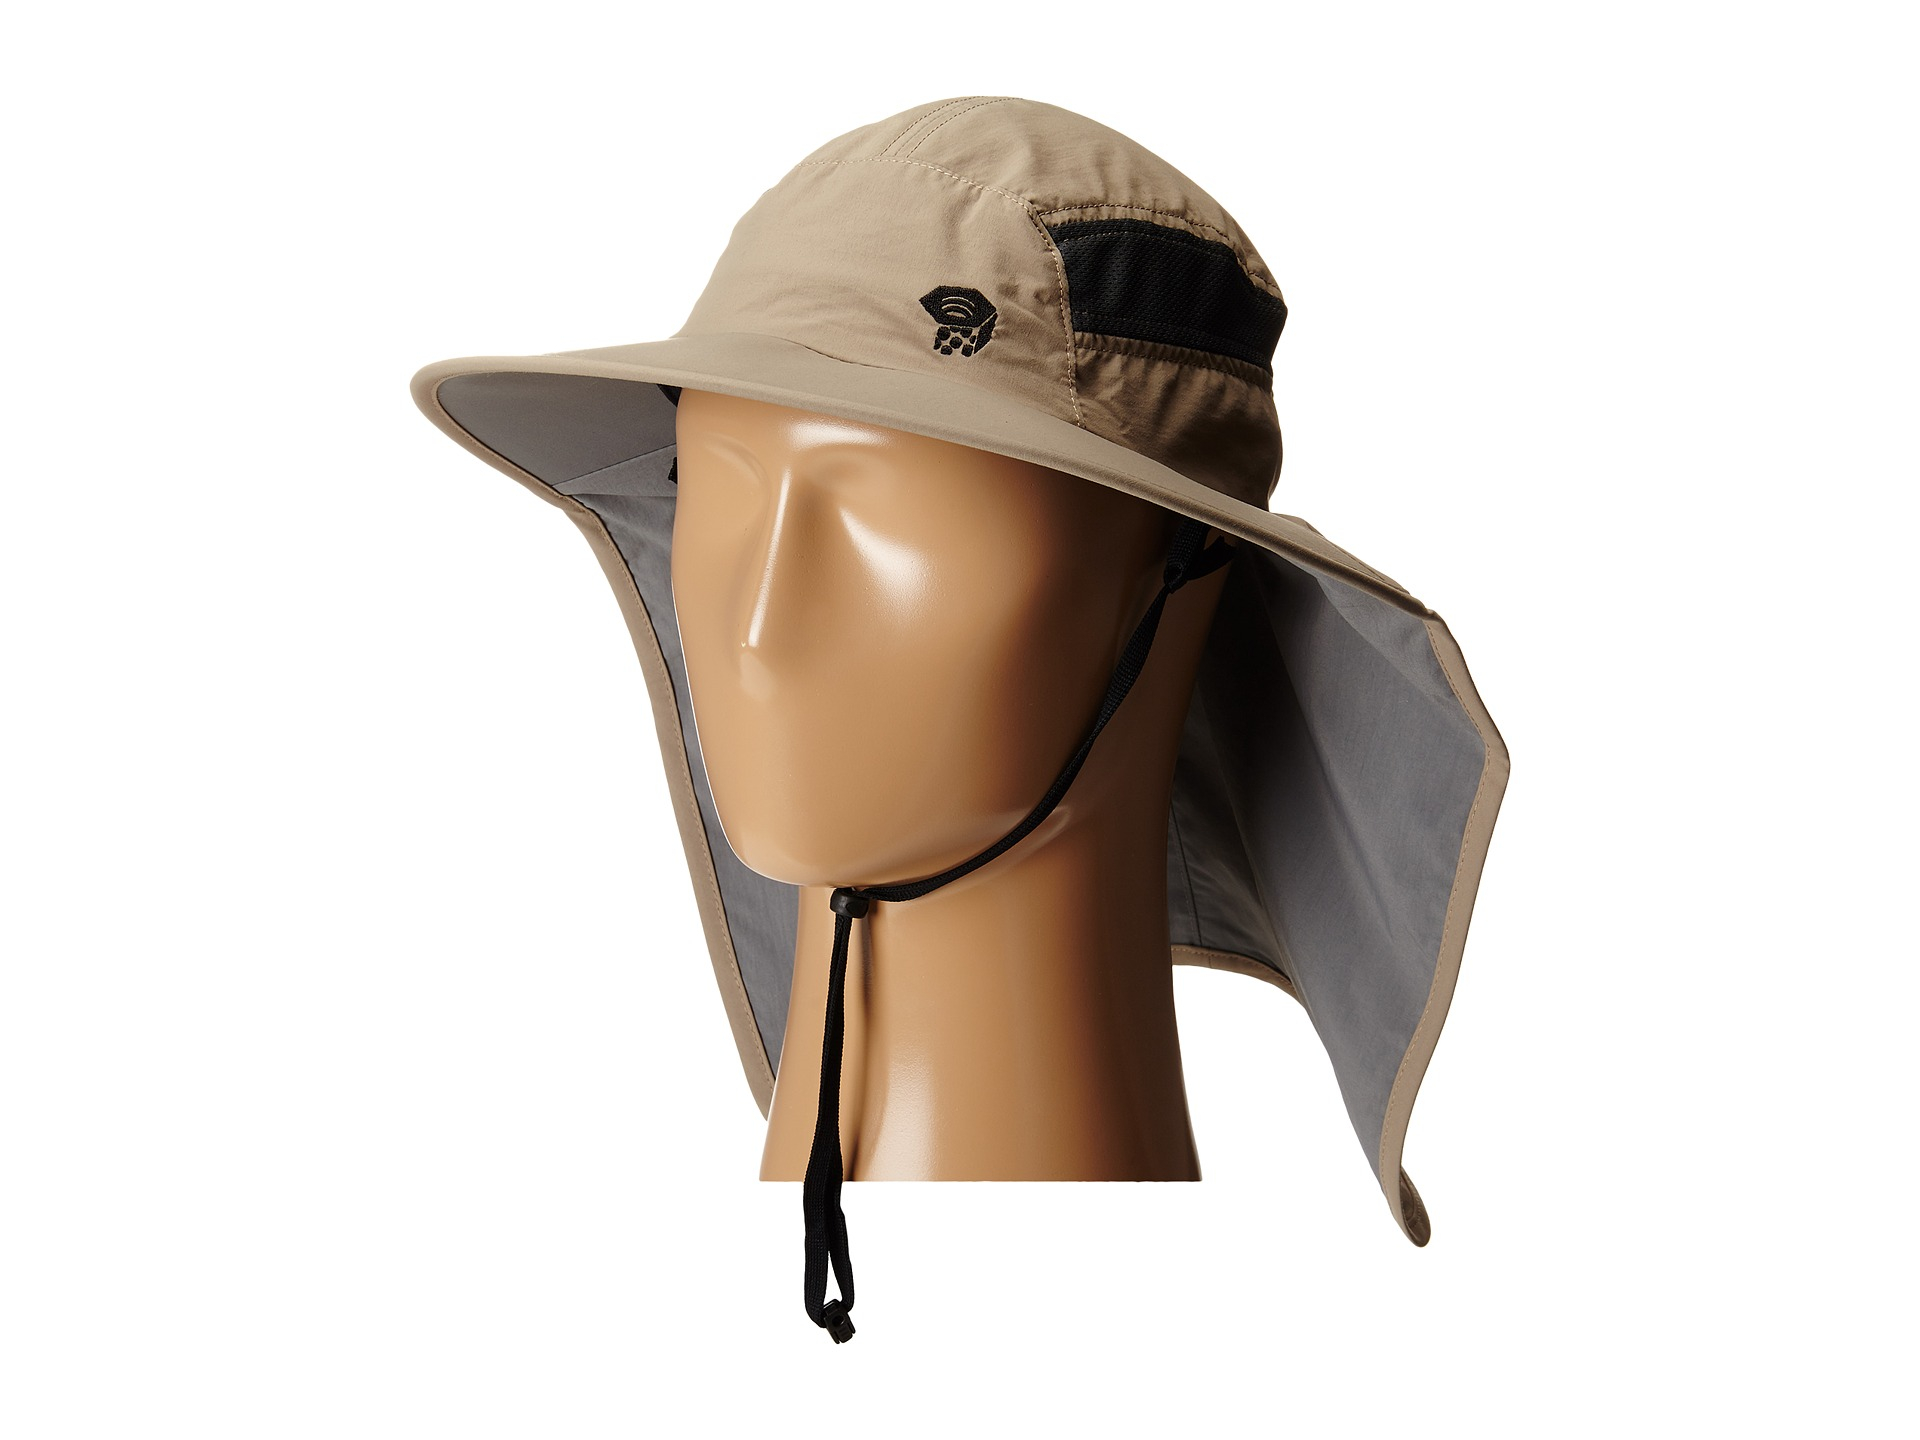 Lyst - Mountain Hardwear Canyon™ Wide Brim Ravi Hat in Natural for Men 0ed3ce92ca74